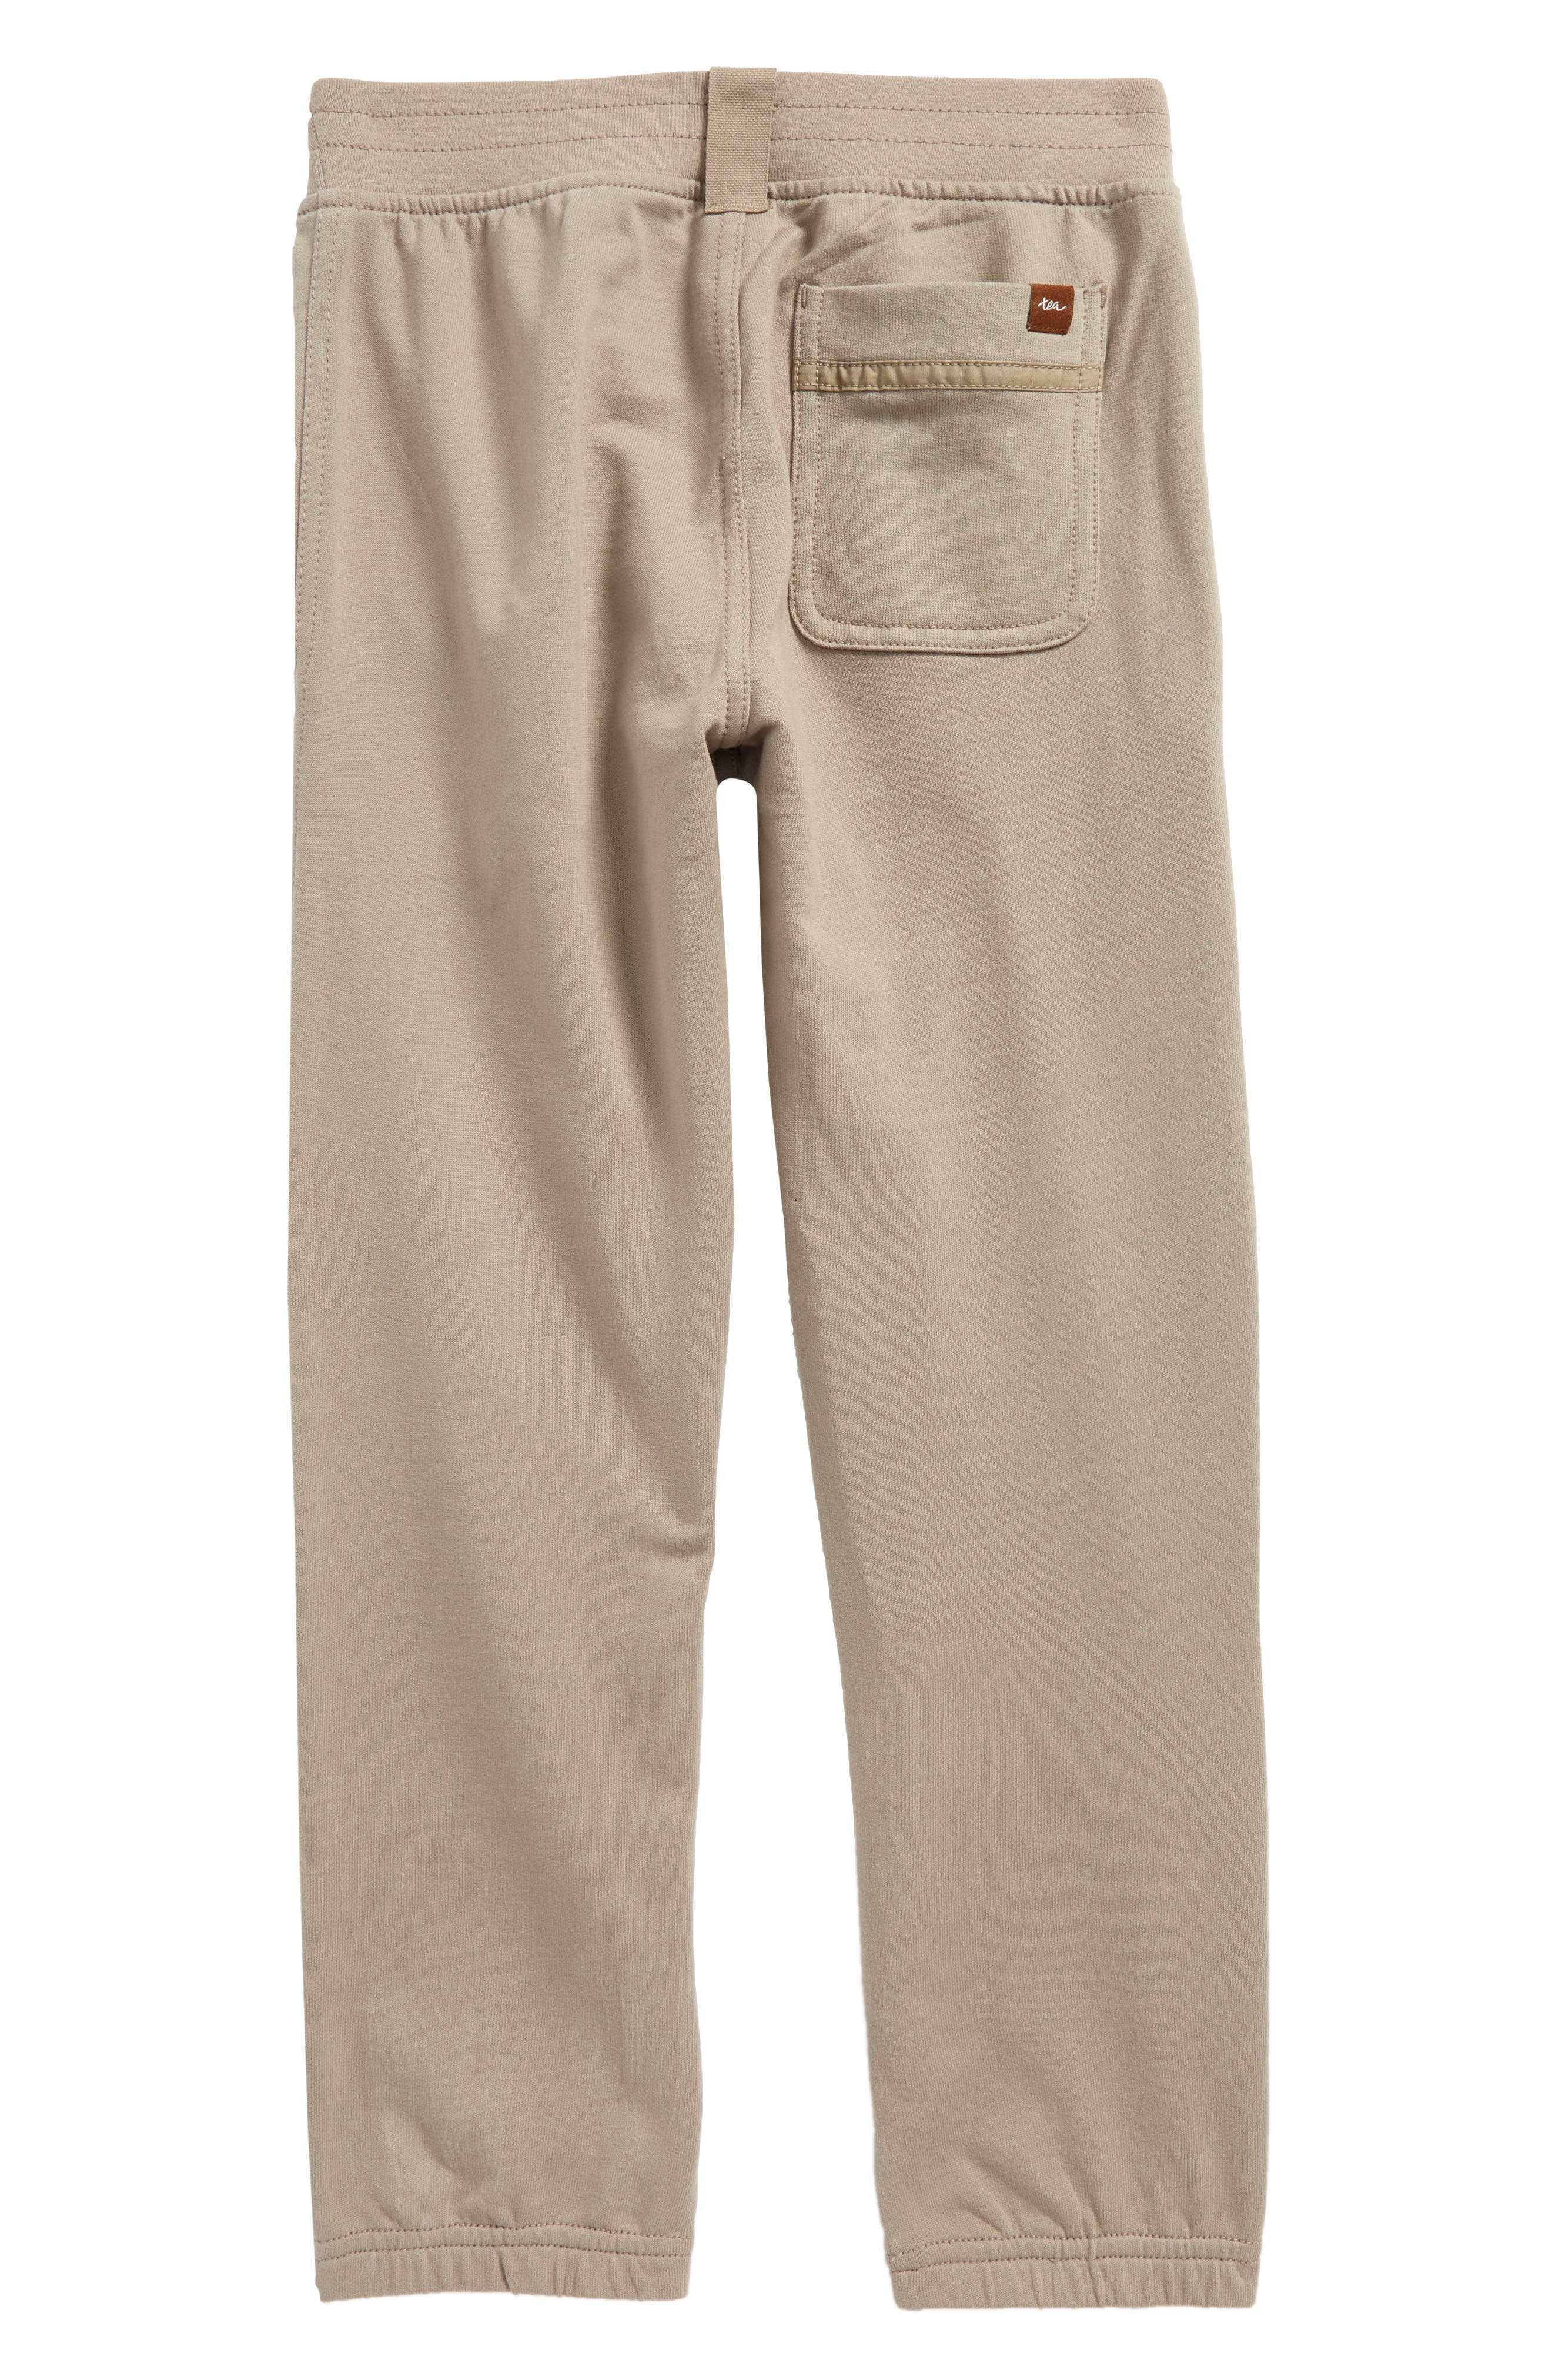 French Terry Moto Pants,                             Alternate thumbnail 2, color,                             268